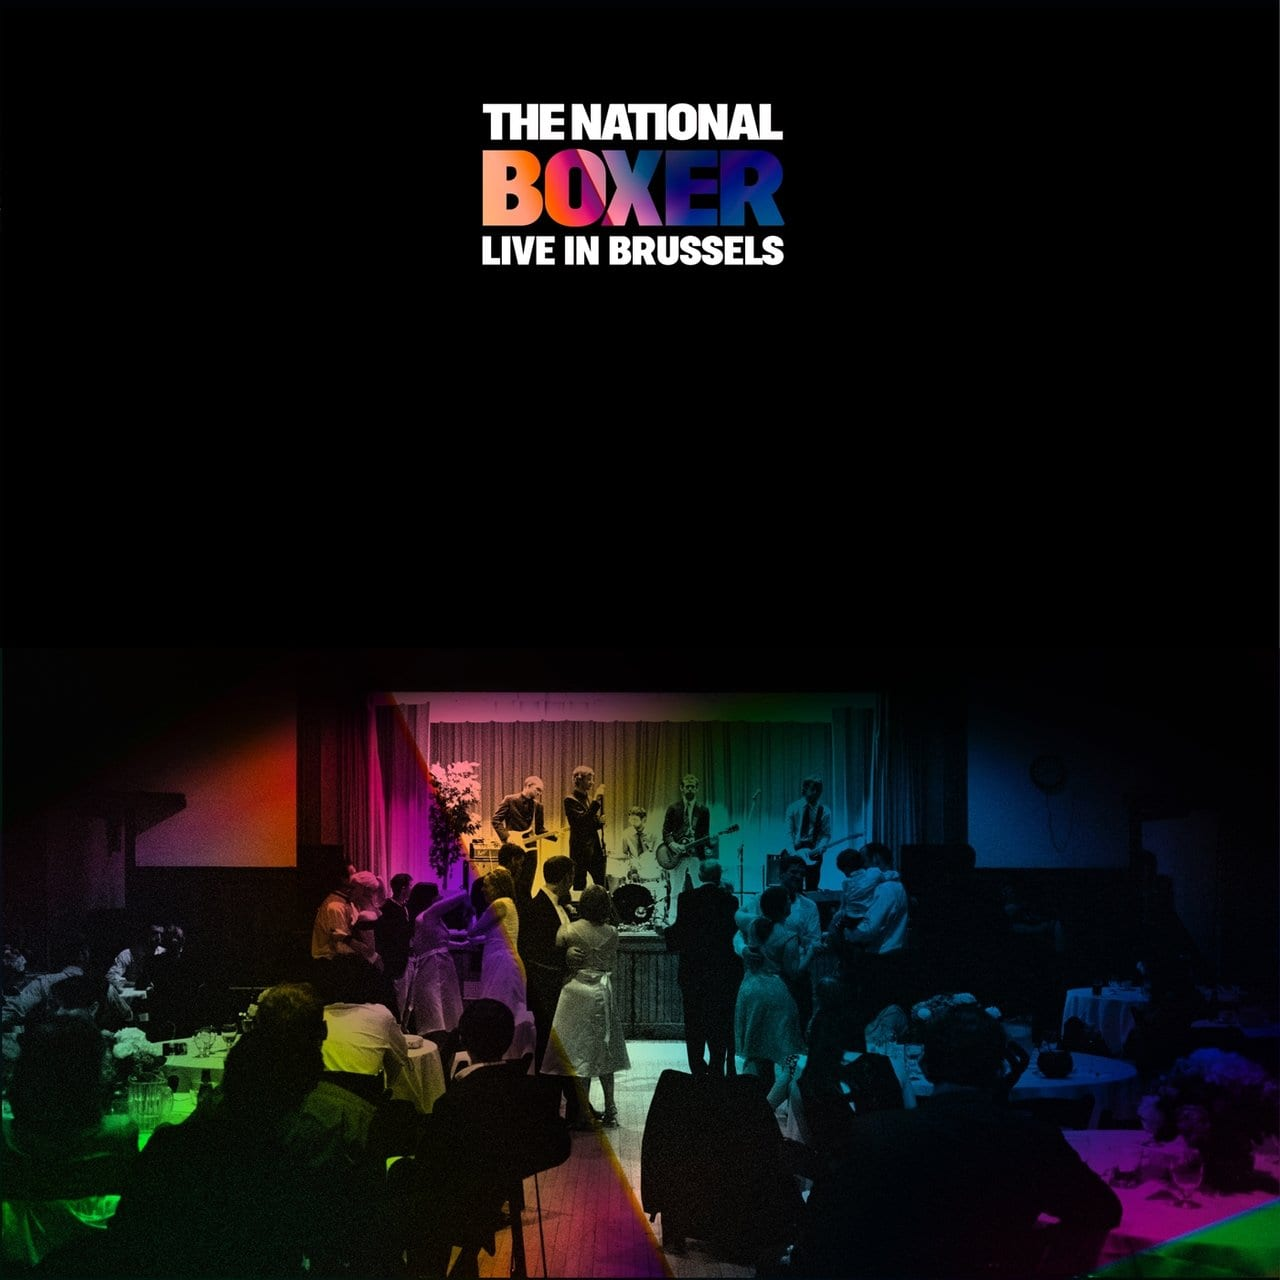 """The National – """"Boxer Live in Brussels"""""""